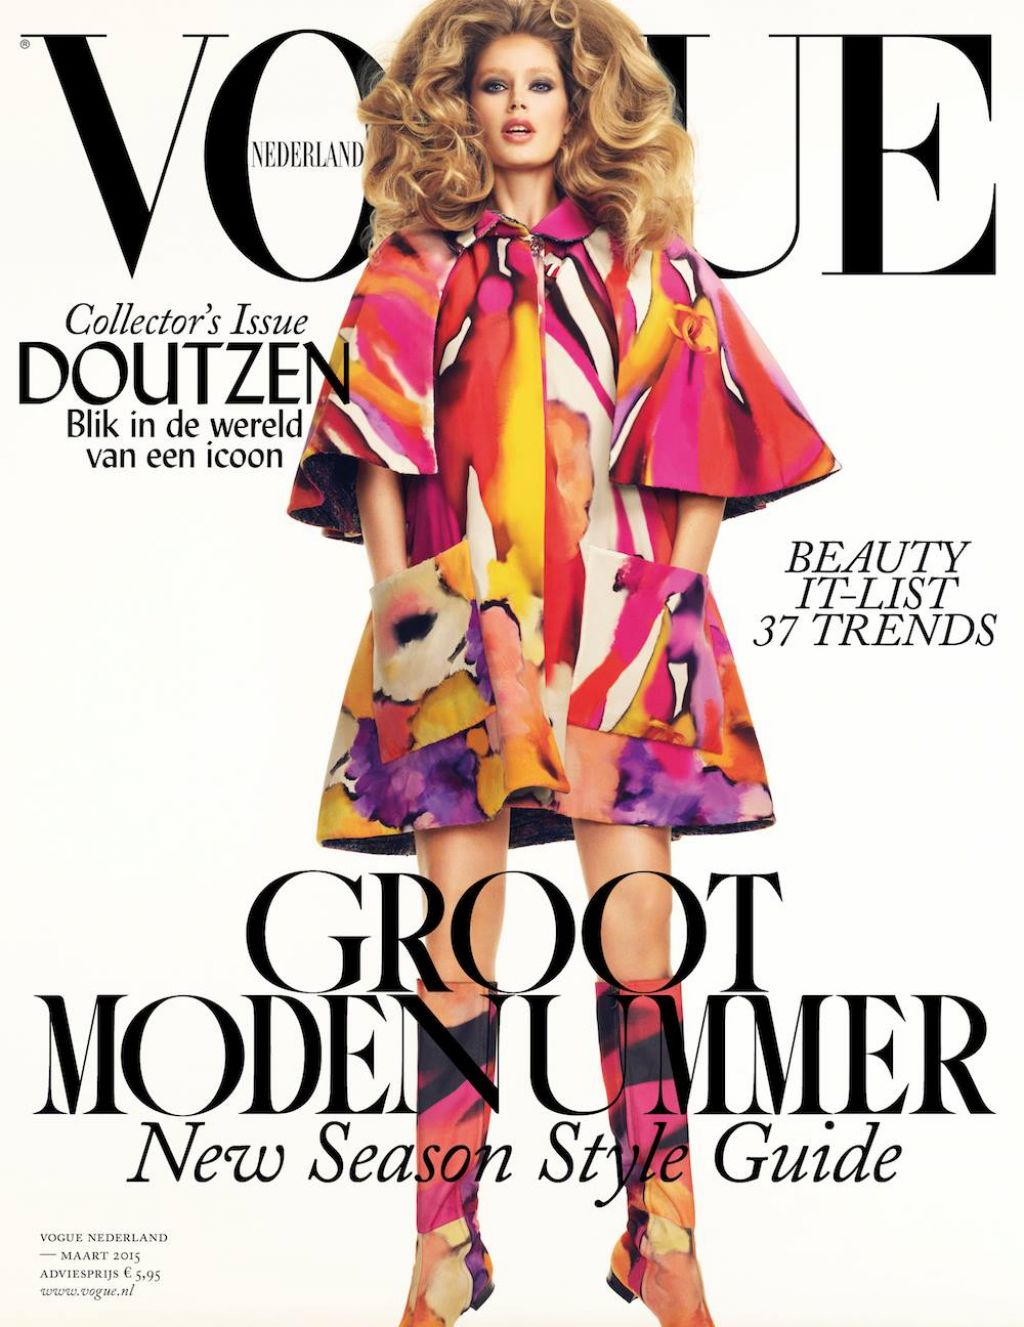 http://celebmafia.com/wp-content/uploads/2015/02/doutzen-kroes-vogue-magazine-nederland-march-2015-cover_3.jpg